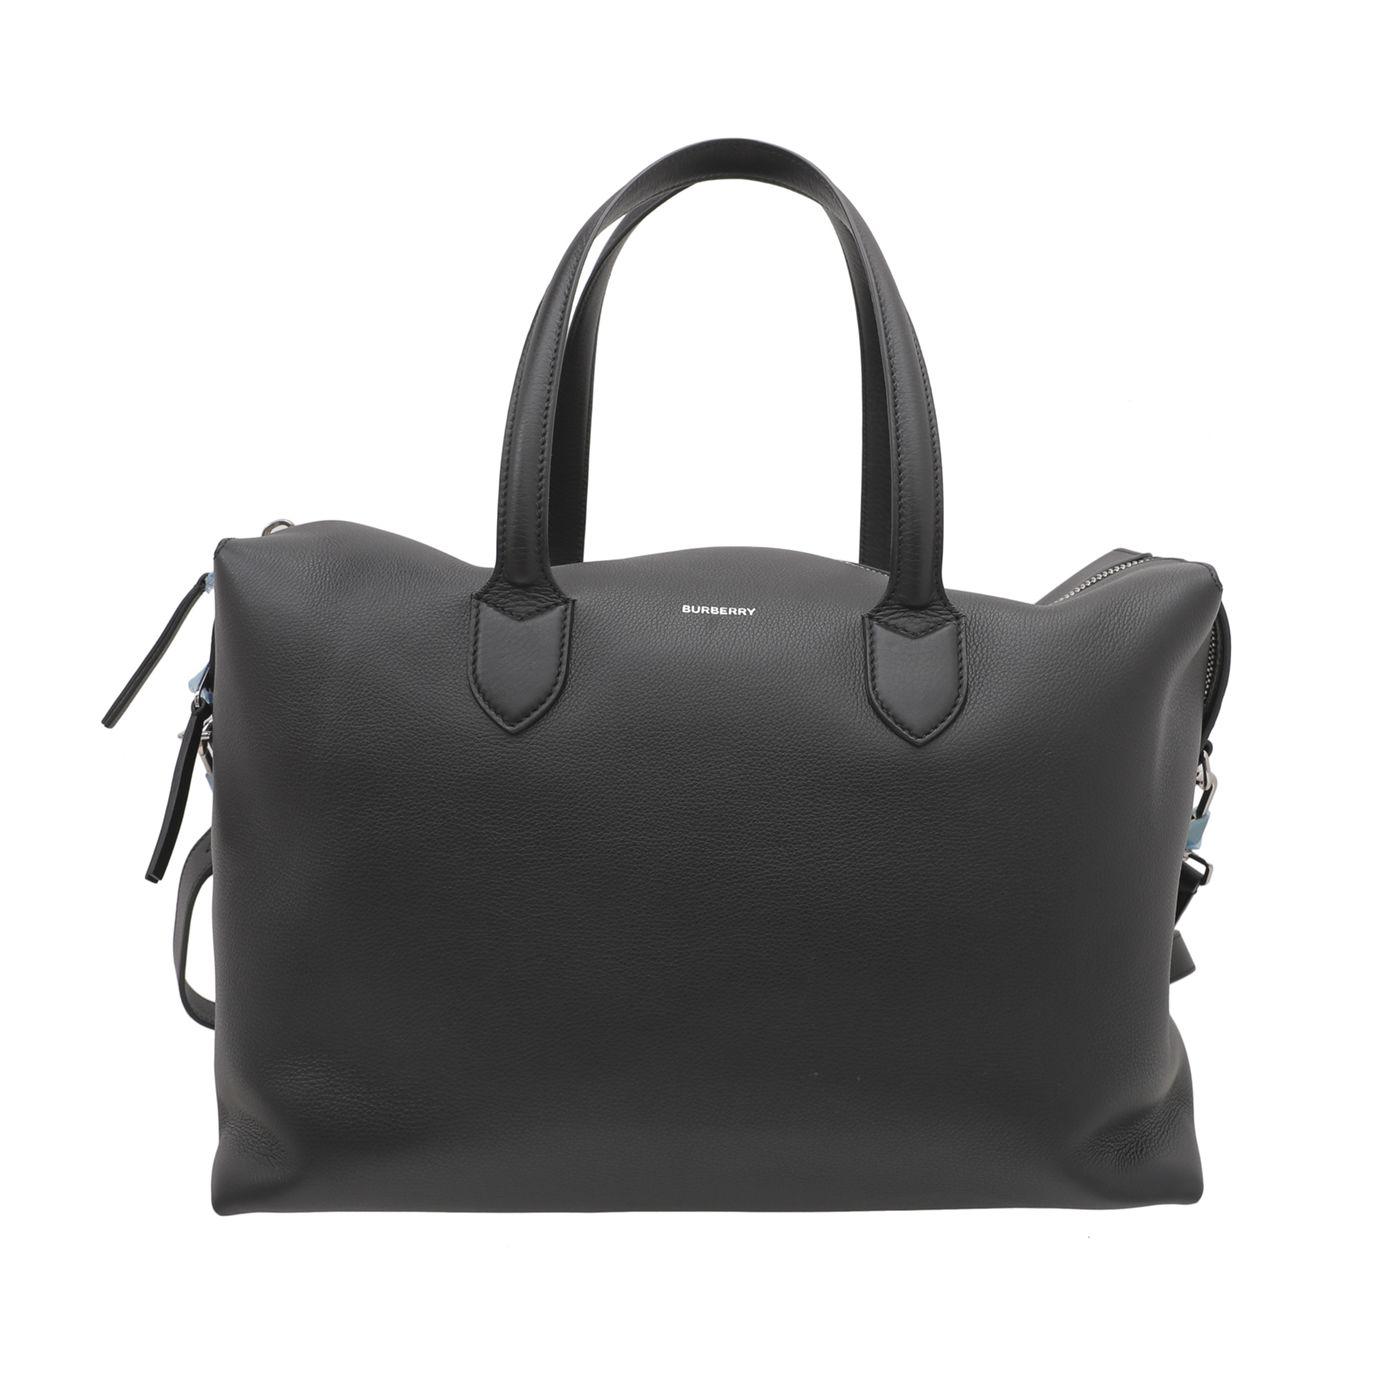 Burberry Black Lawrence Holdall Weekender Bag